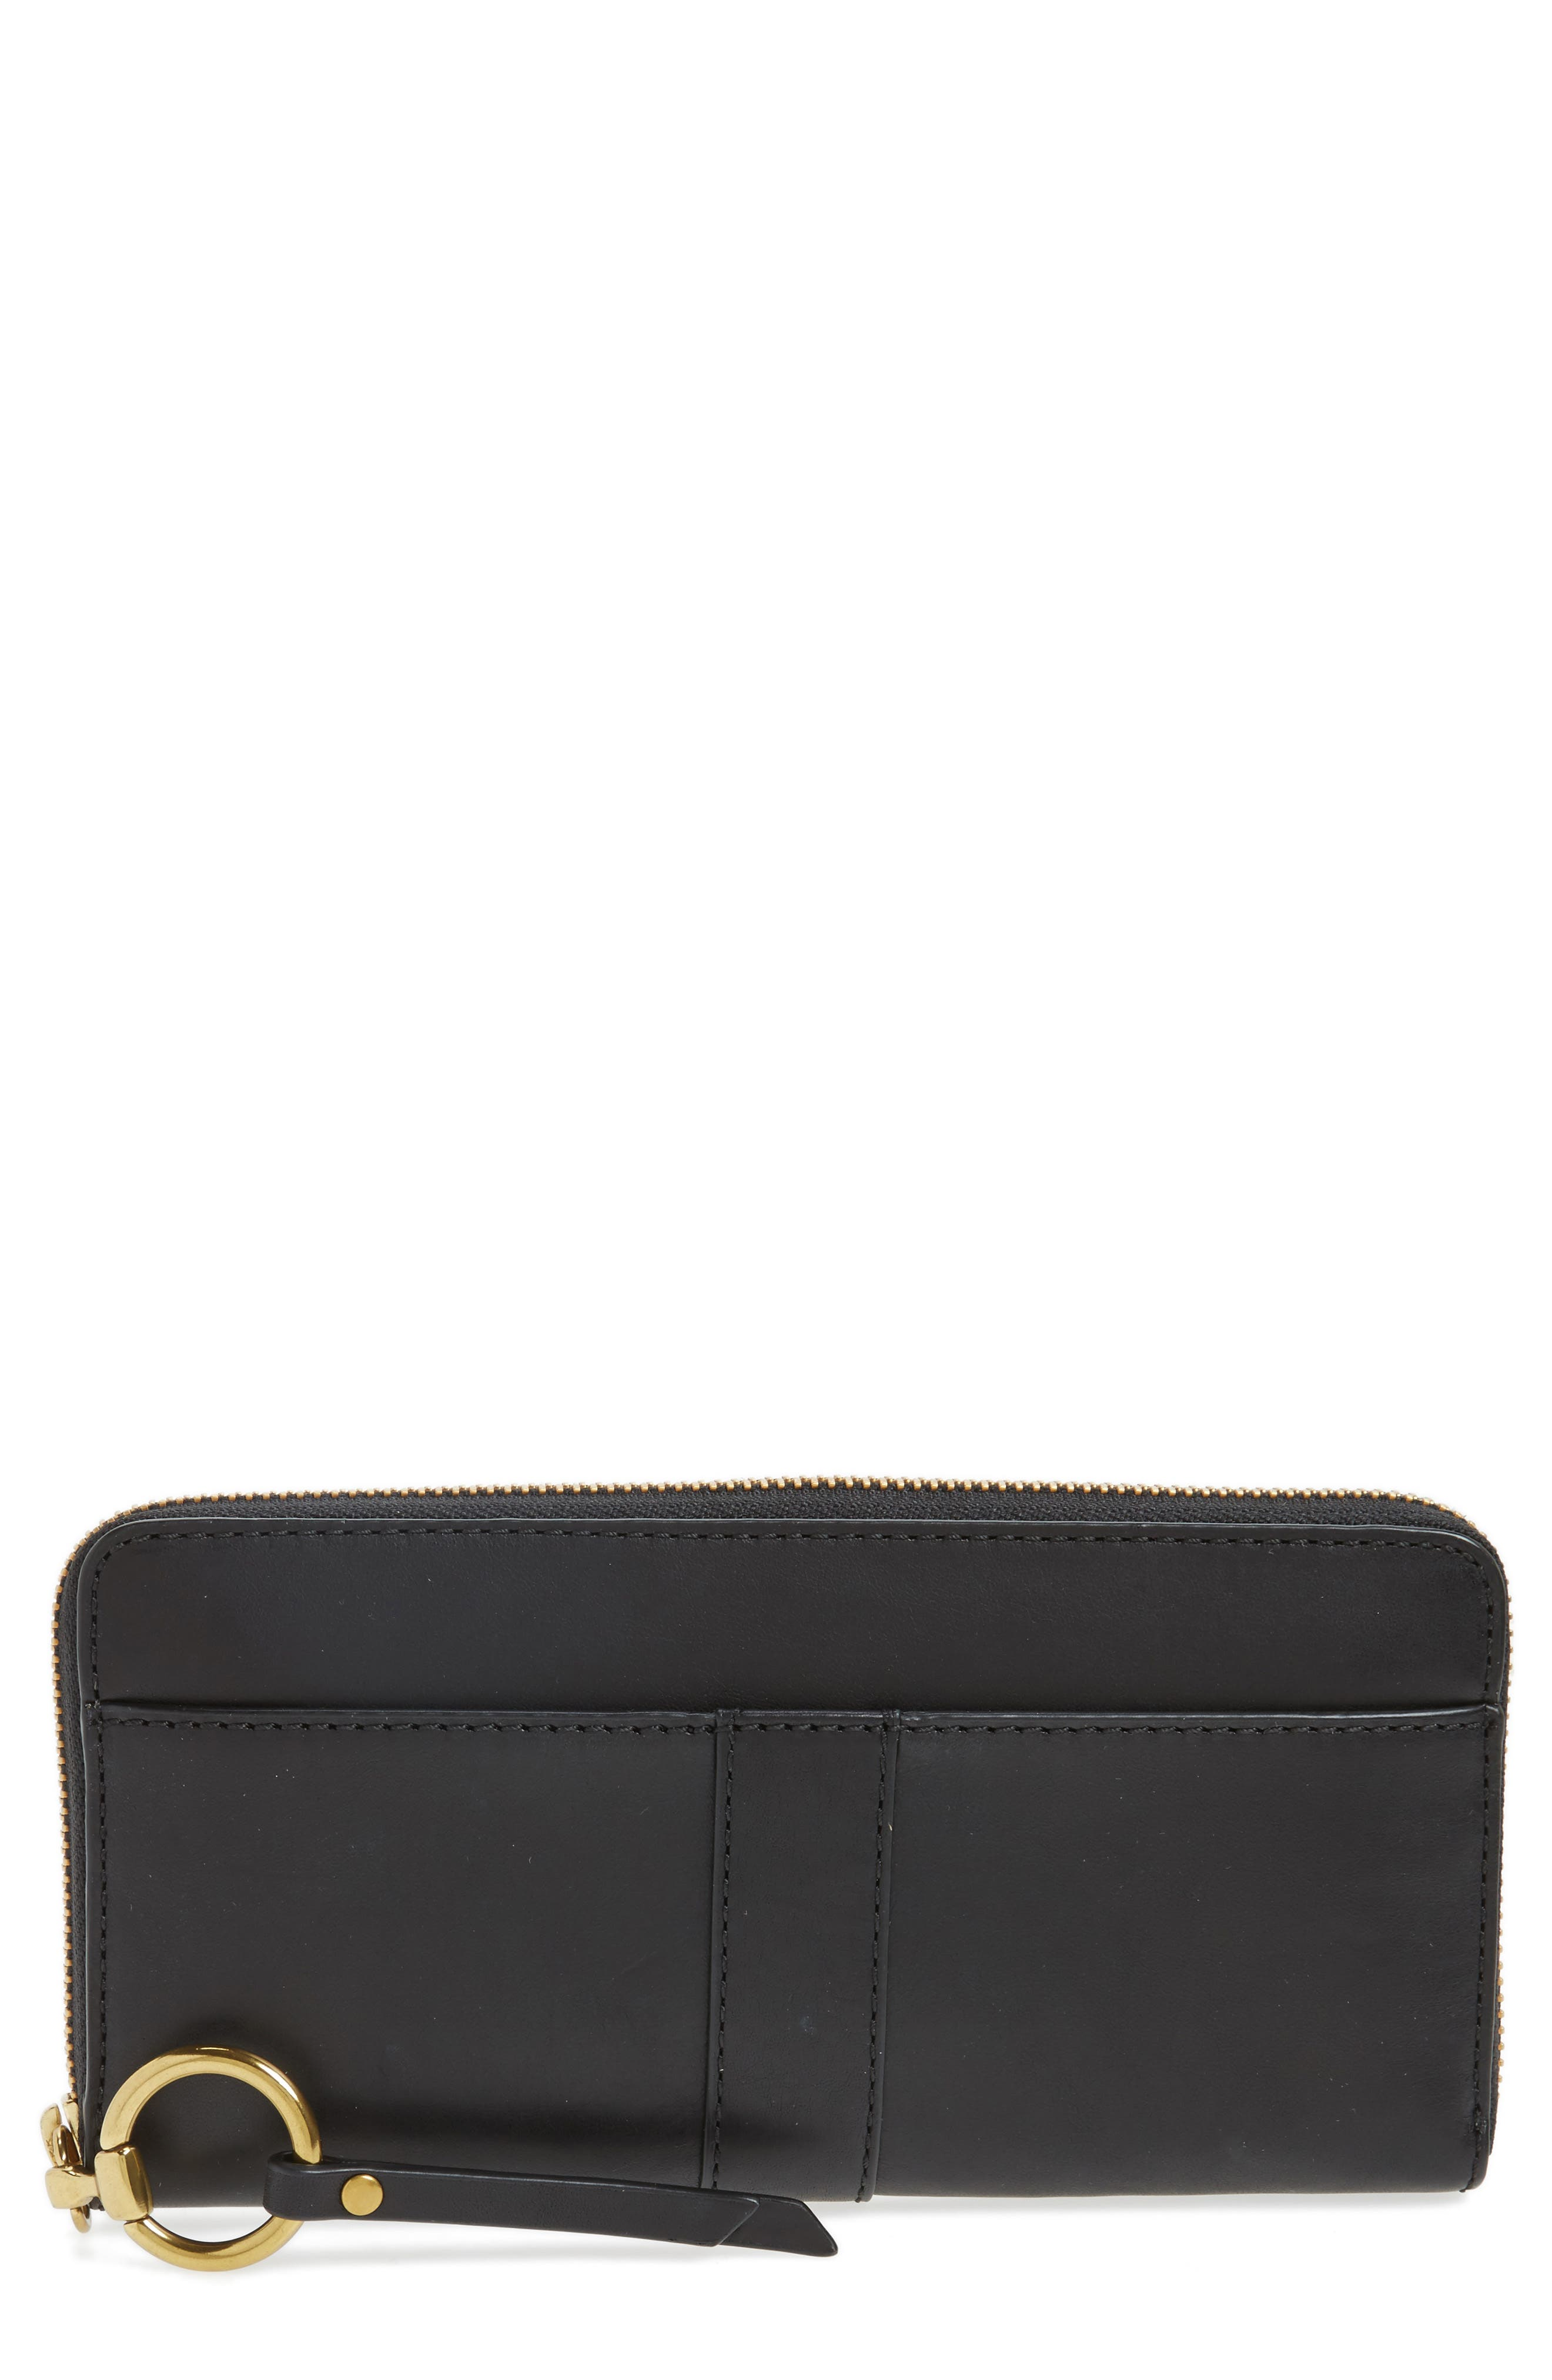 Ilana Harness Leather Zip Wallet,                         Main,                         color, 001